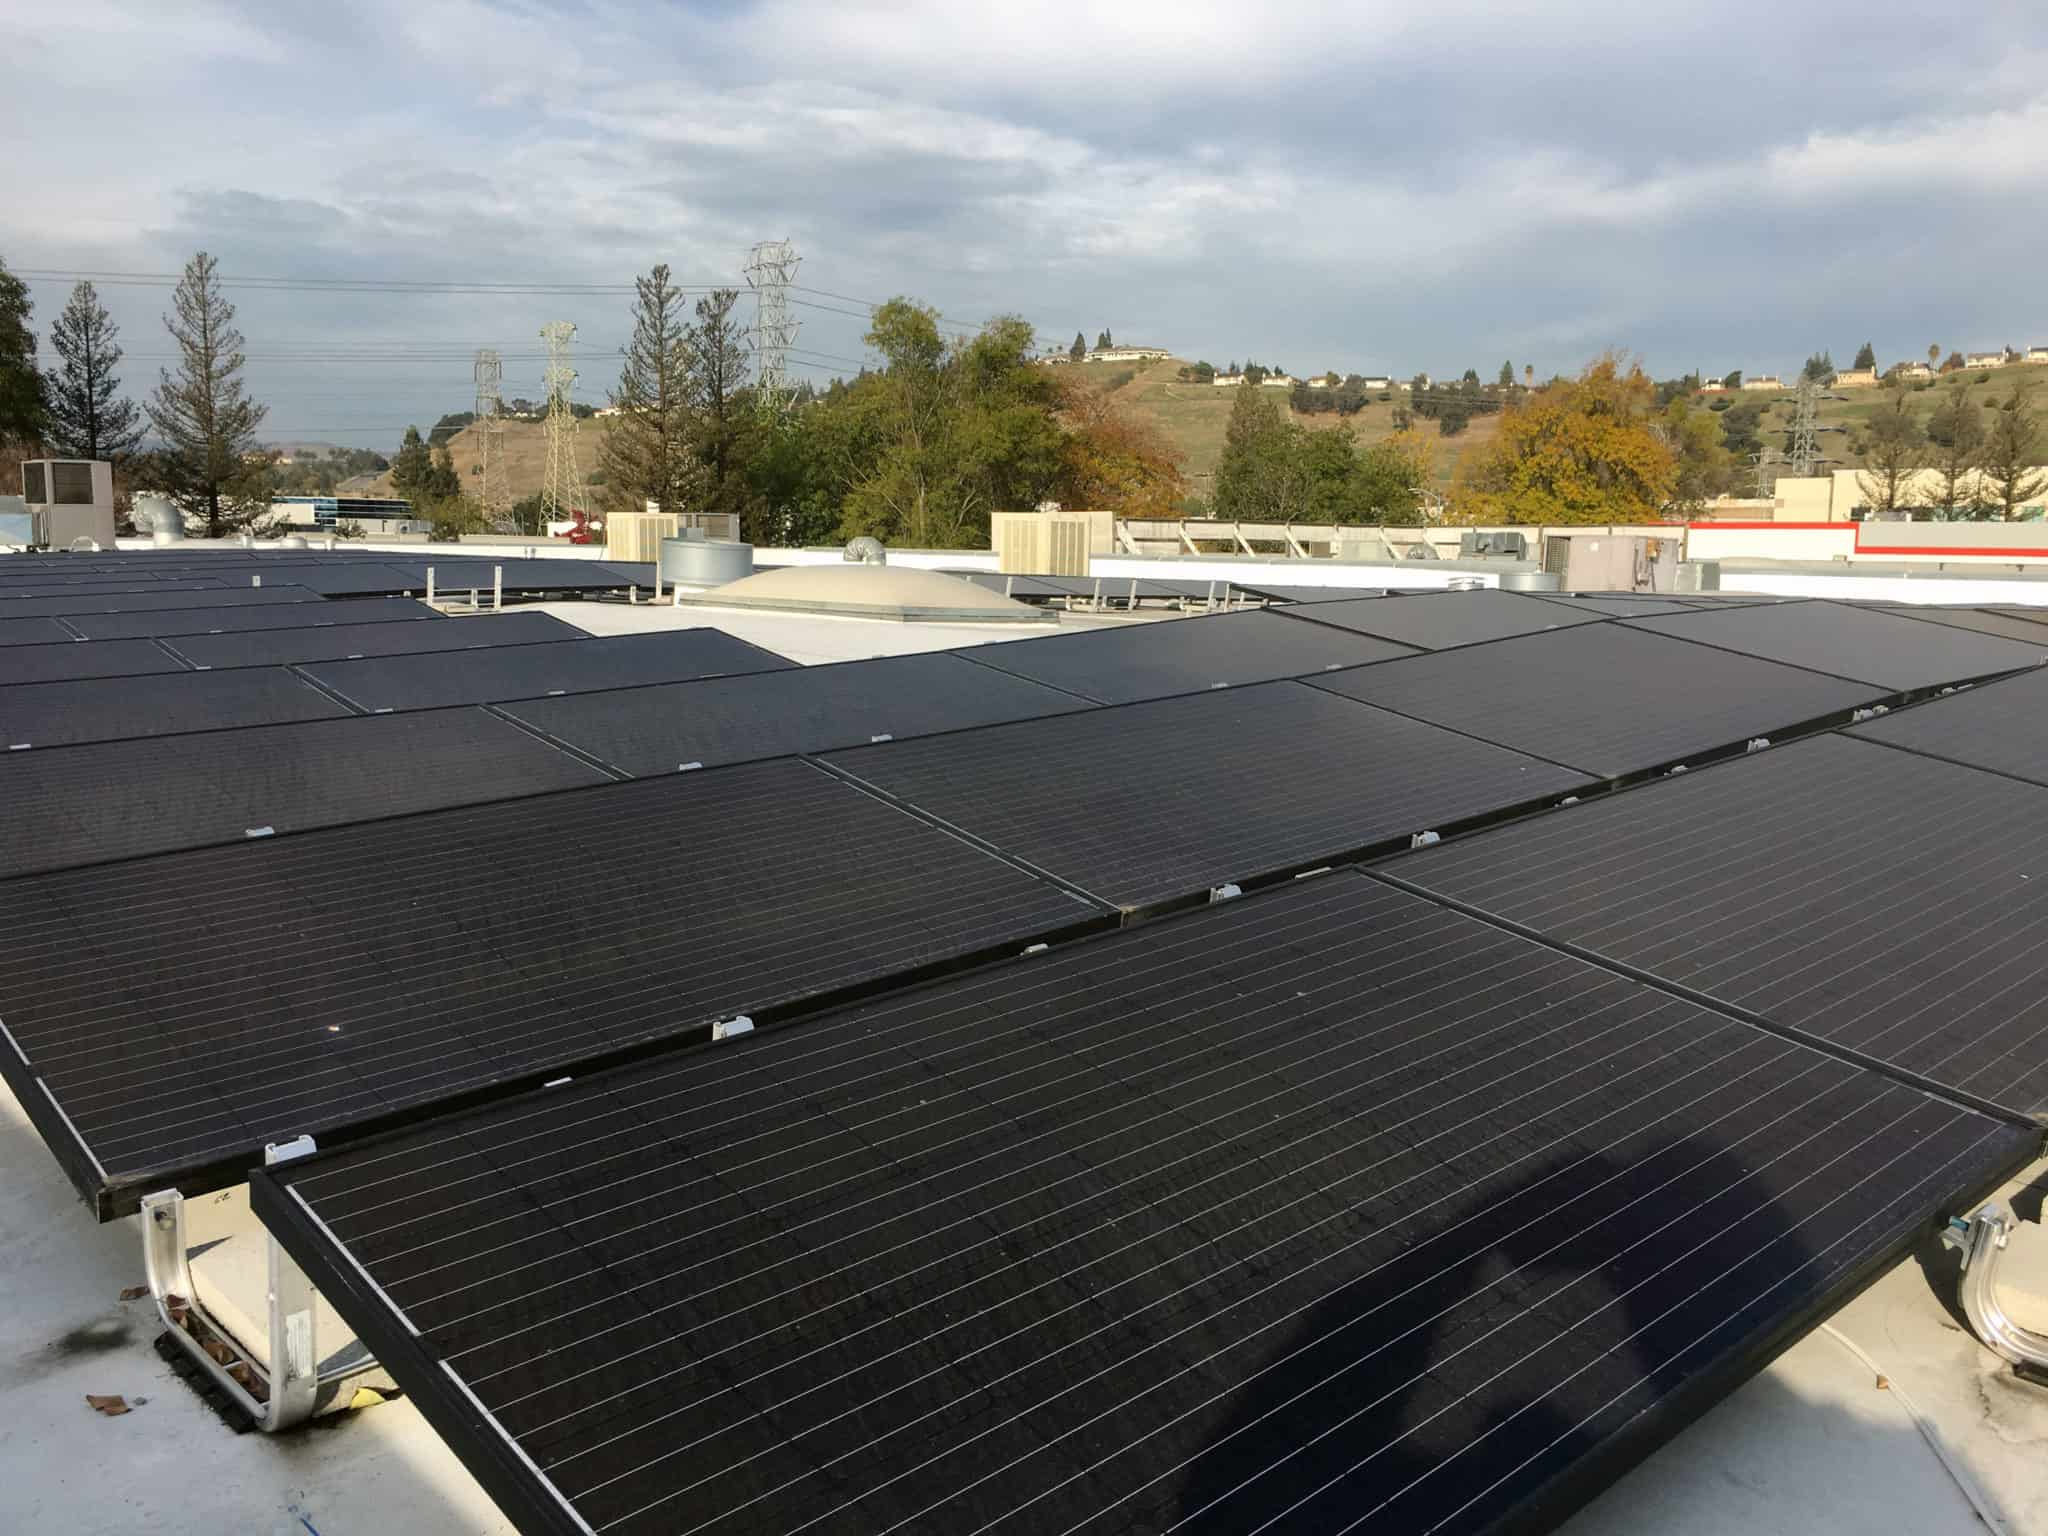 Surplus Service installed solar panels on its roof, which will reduce the company's carbon footprint to virtually zero.